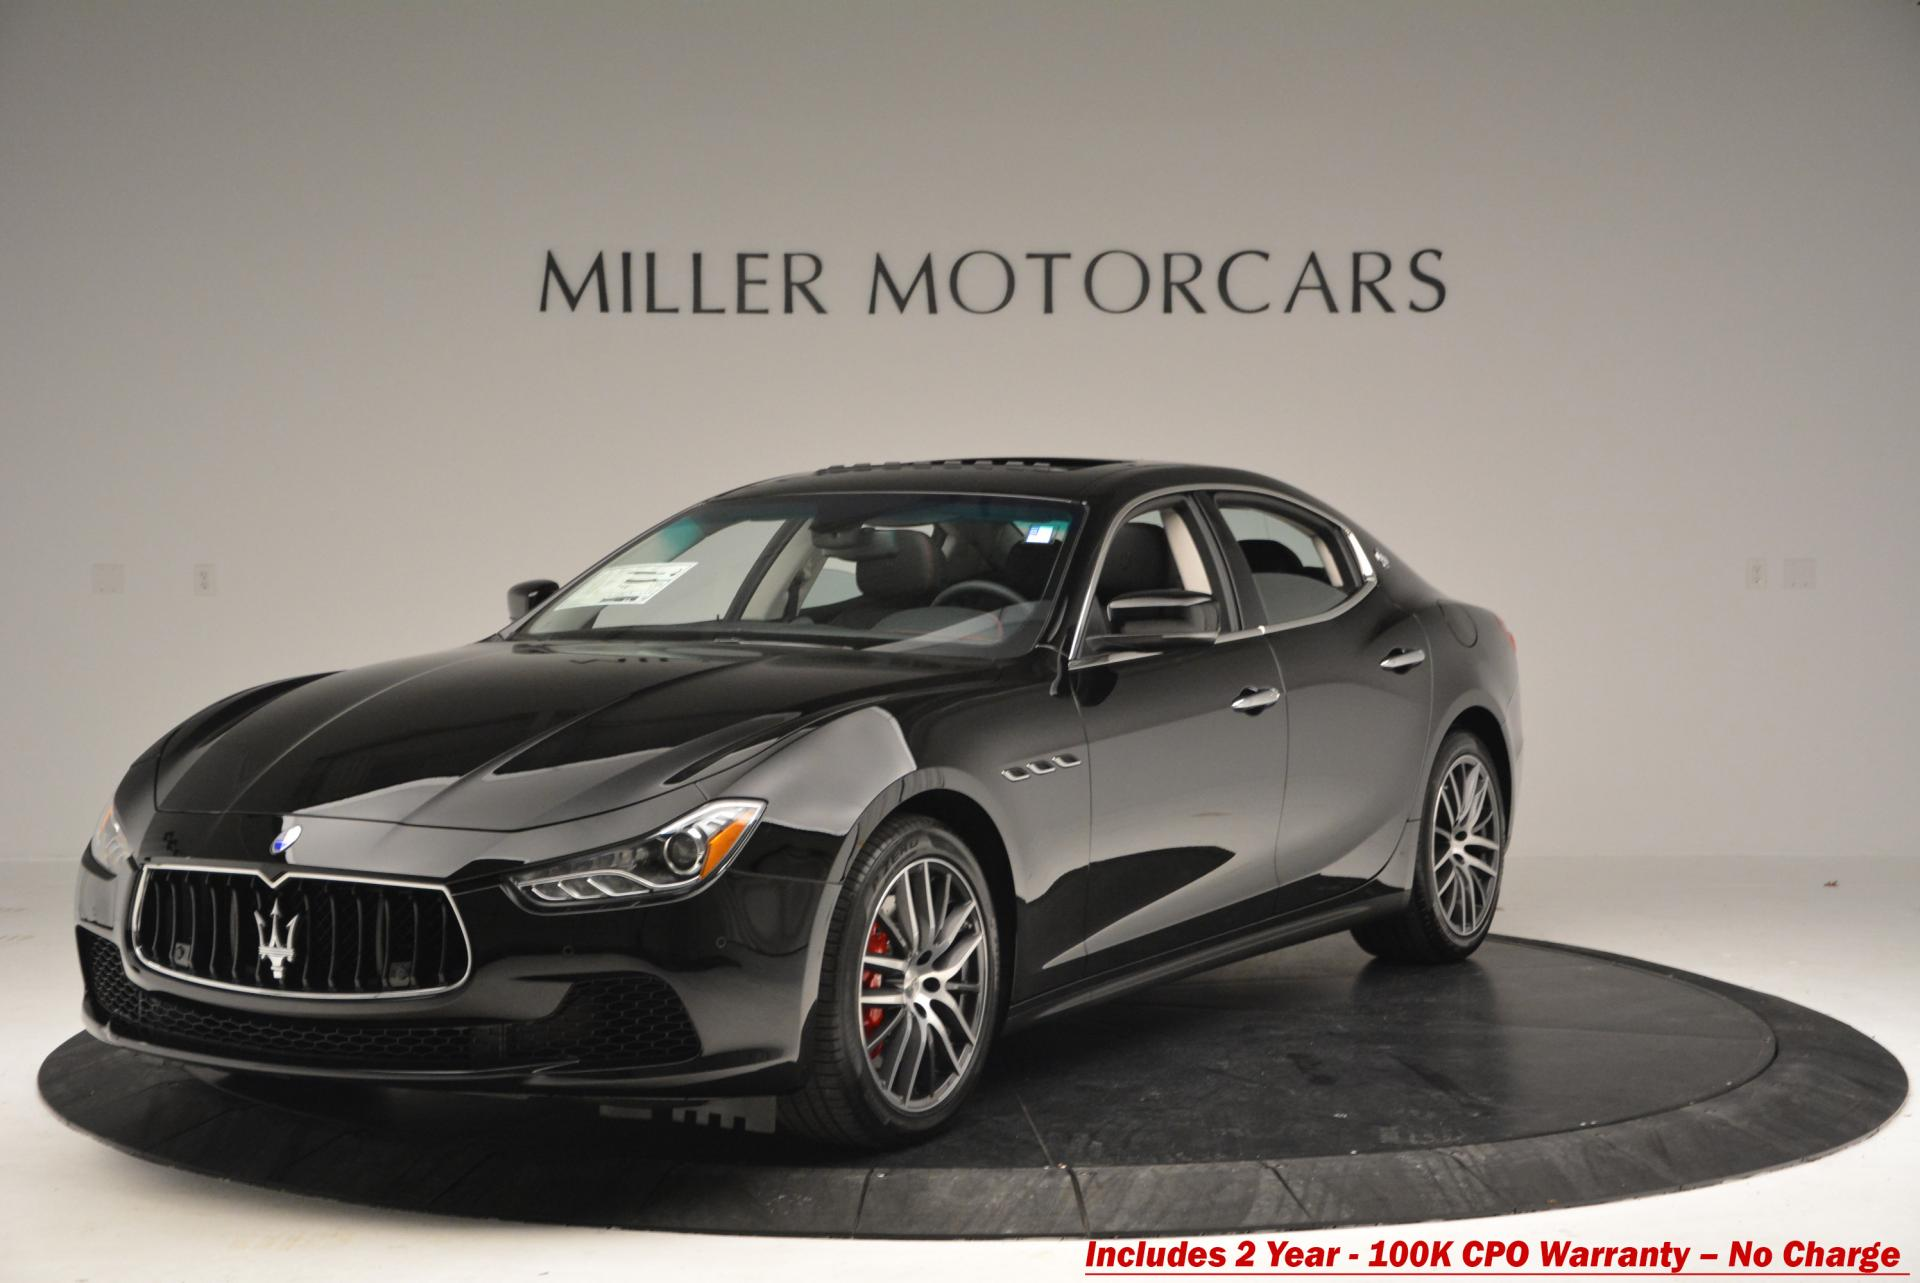 Used 2016 Maserati Ghibli S Q4 for sale Sold at Maserati of Westport in Westport CT 06880 1